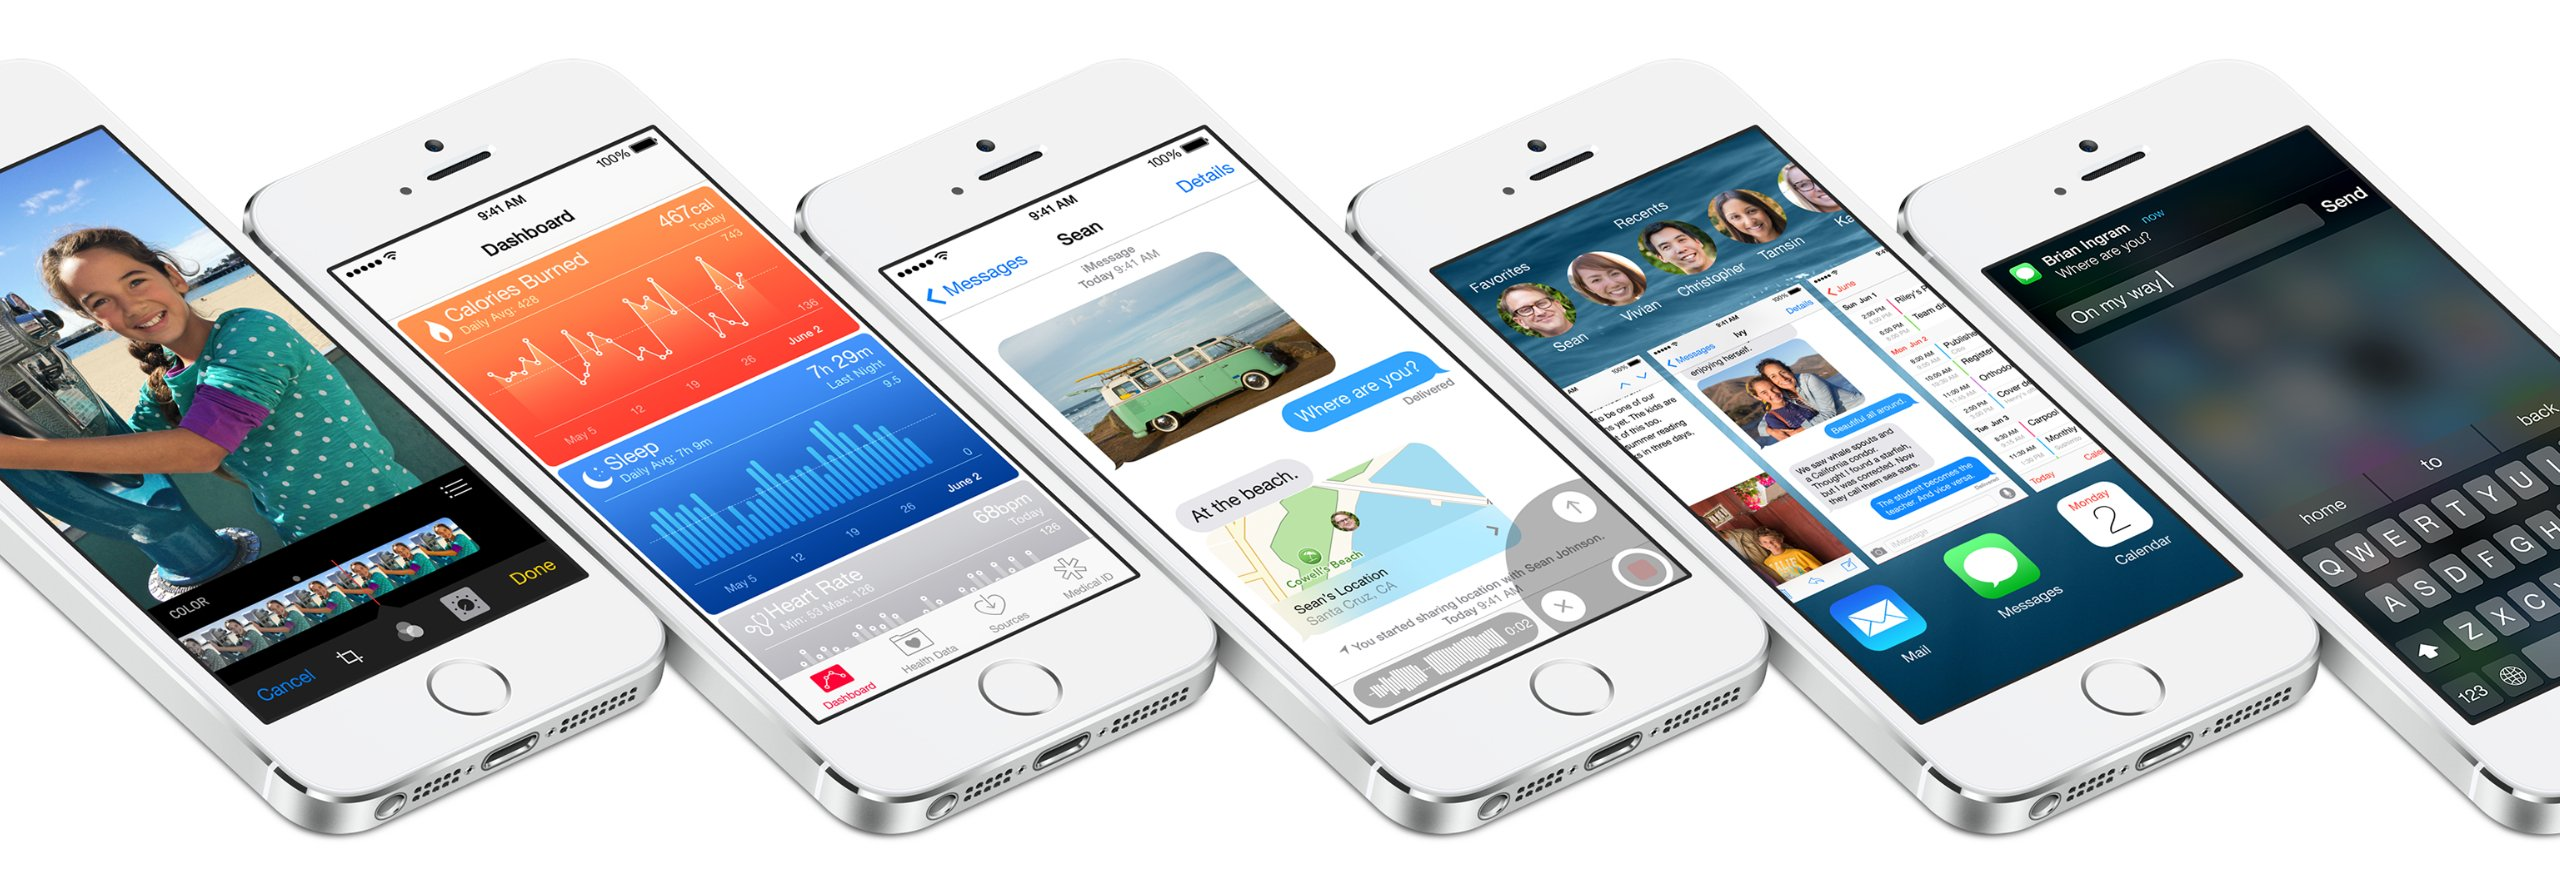 Apple – iOS 8 – Обзор 2014-09-22 15-23-57 2014-09-22 15-24-00